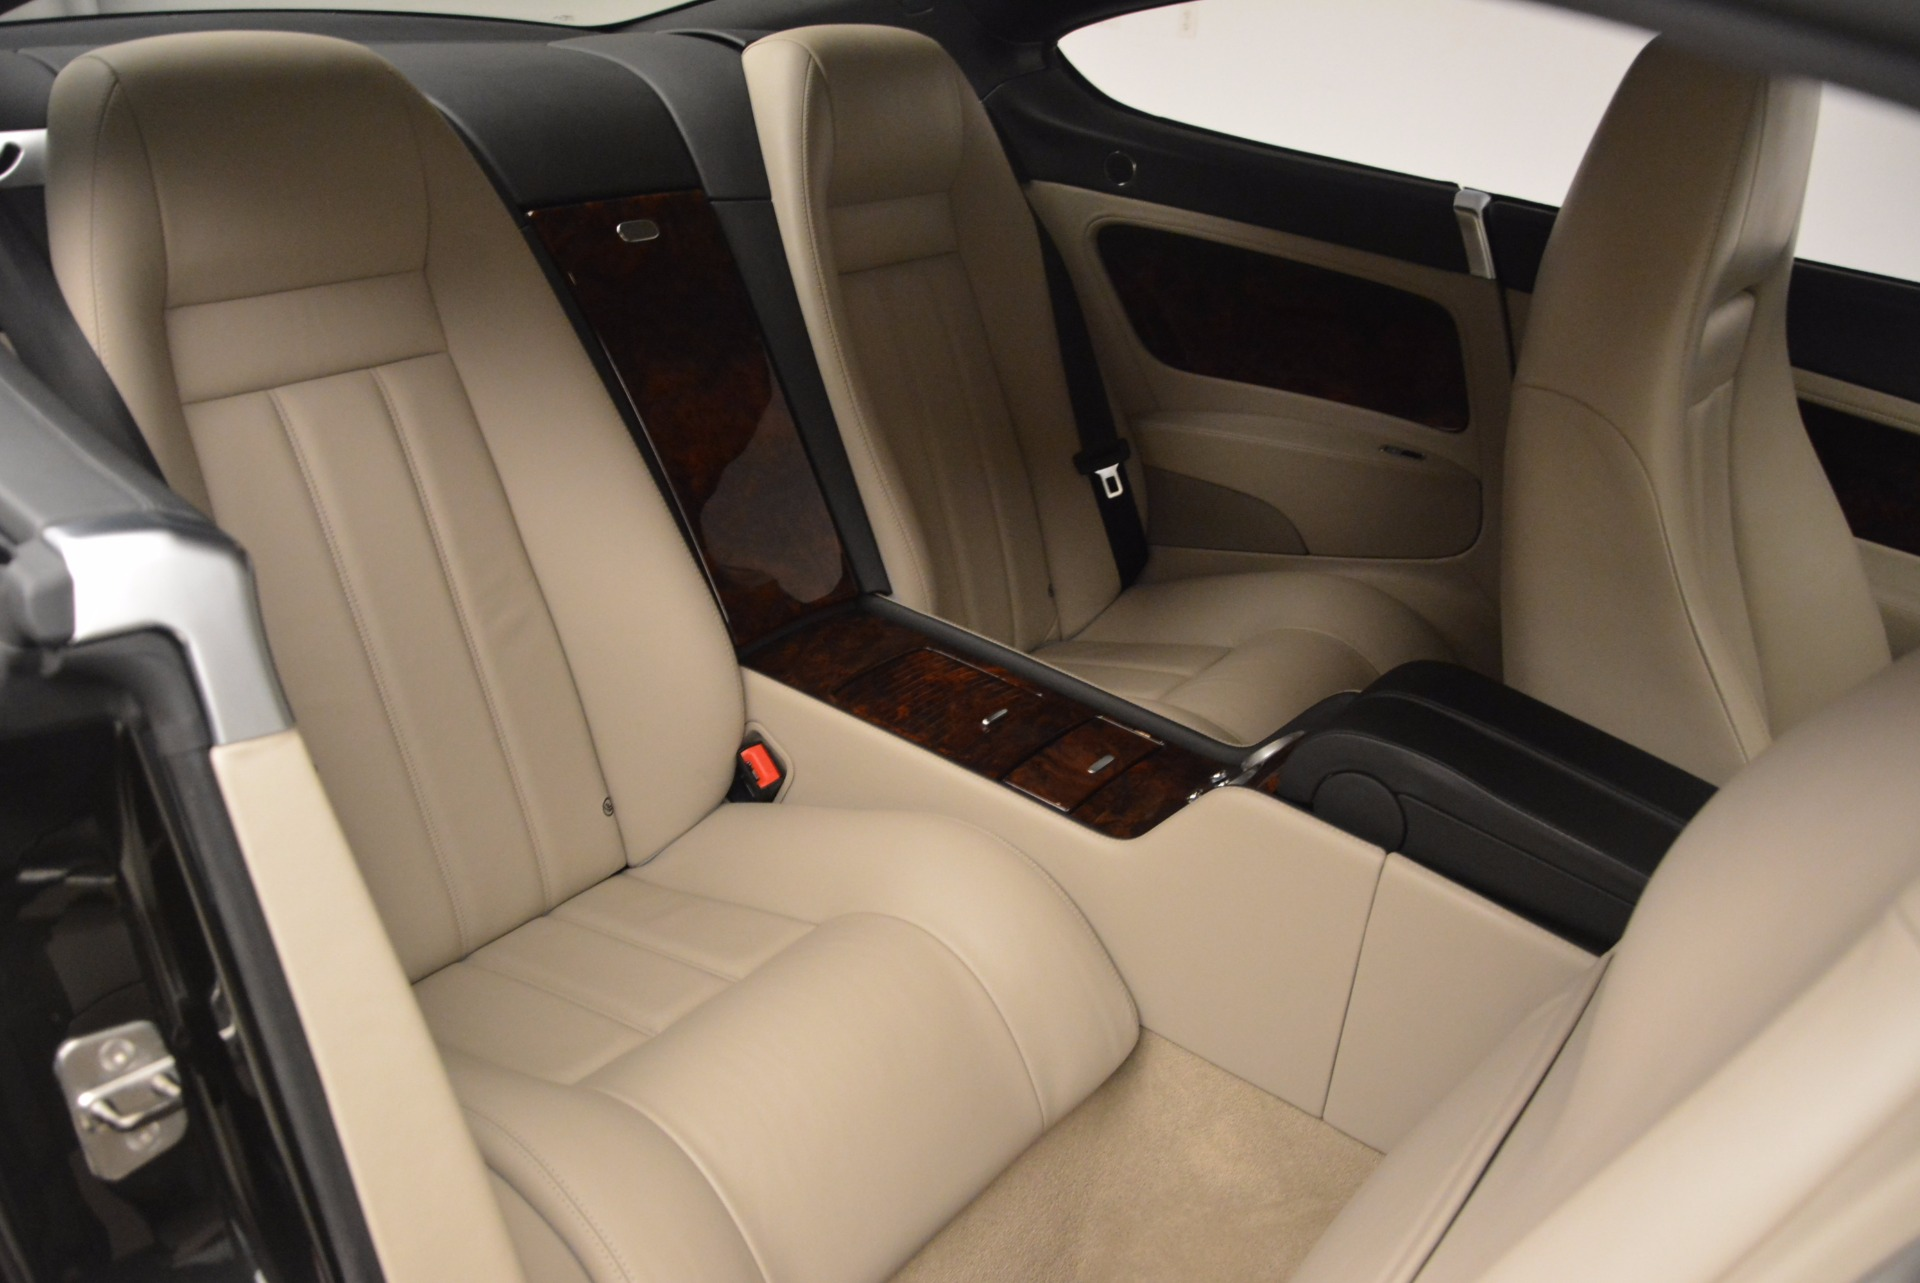 Used 2005 Bentley Continental GT W12 For Sale In Westport, CT 1677_p33